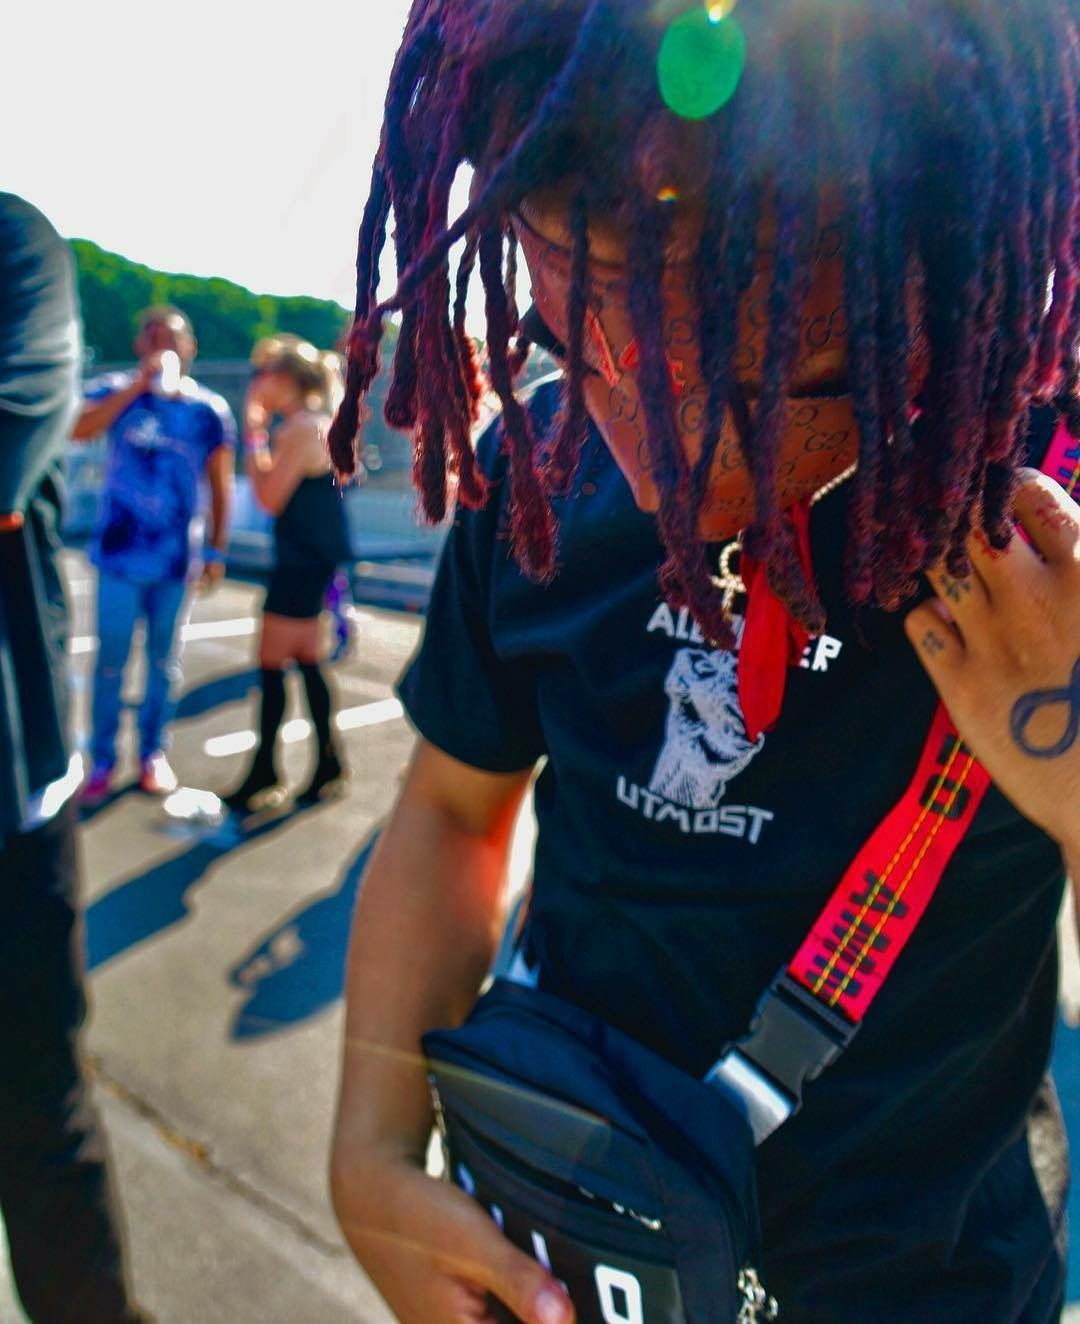 Pin by Trippin$ky. on Trippie Redd | Pinterest